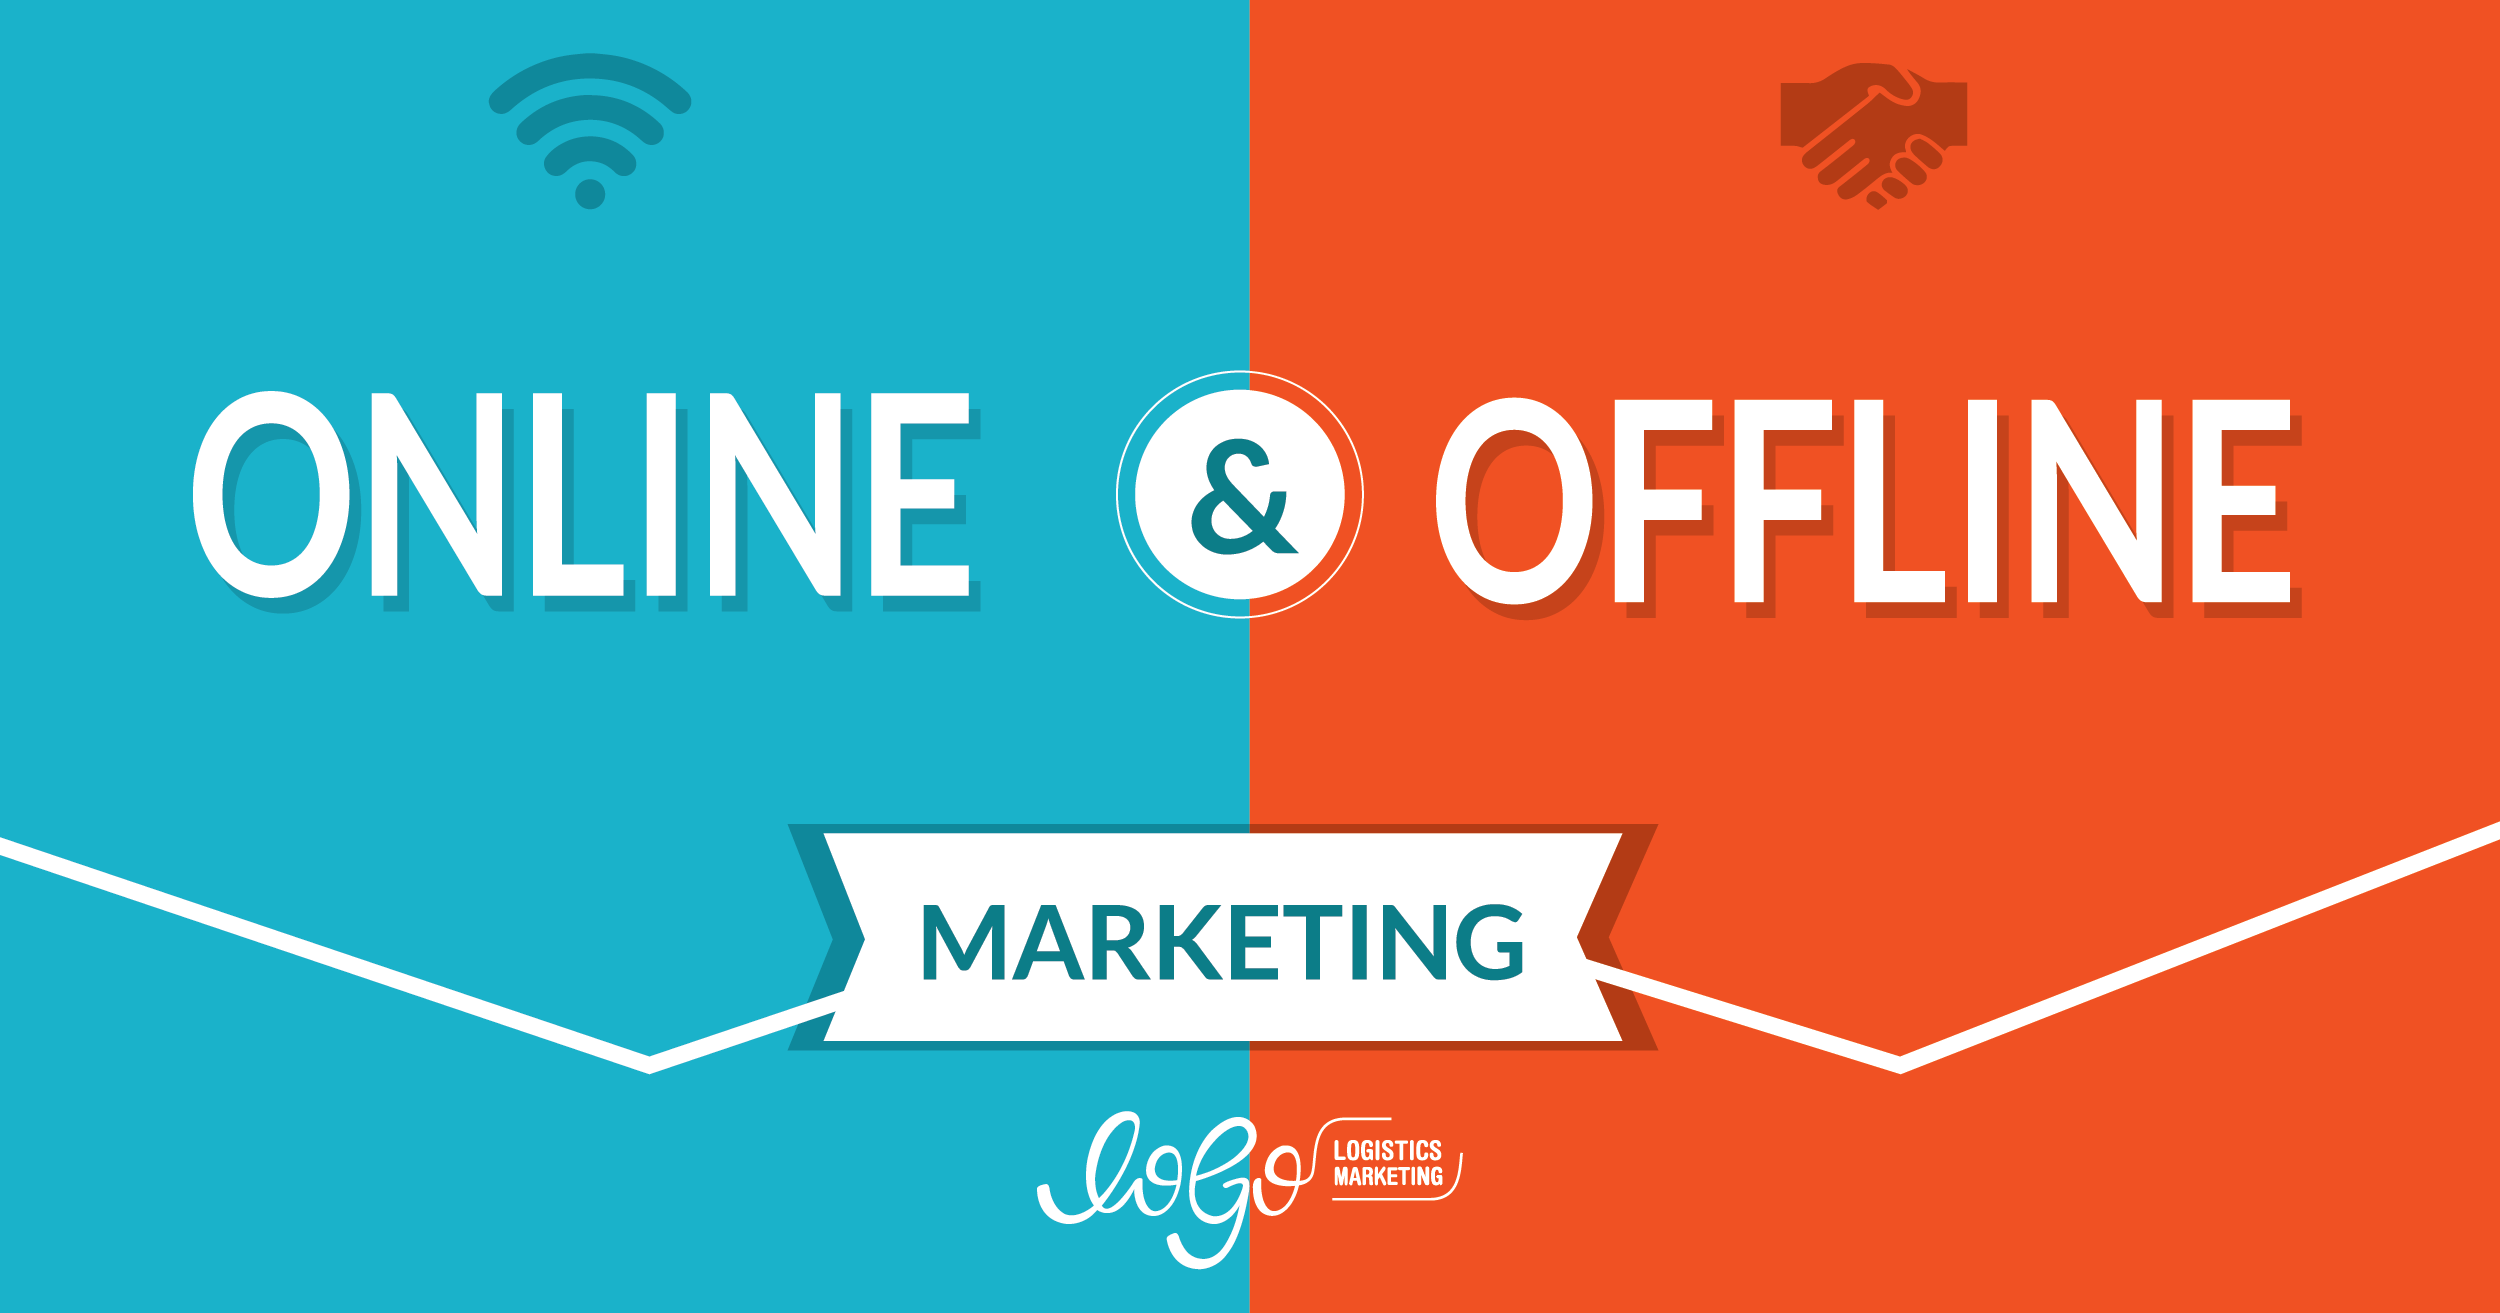 How offline and online marketing approaches work together to support brands